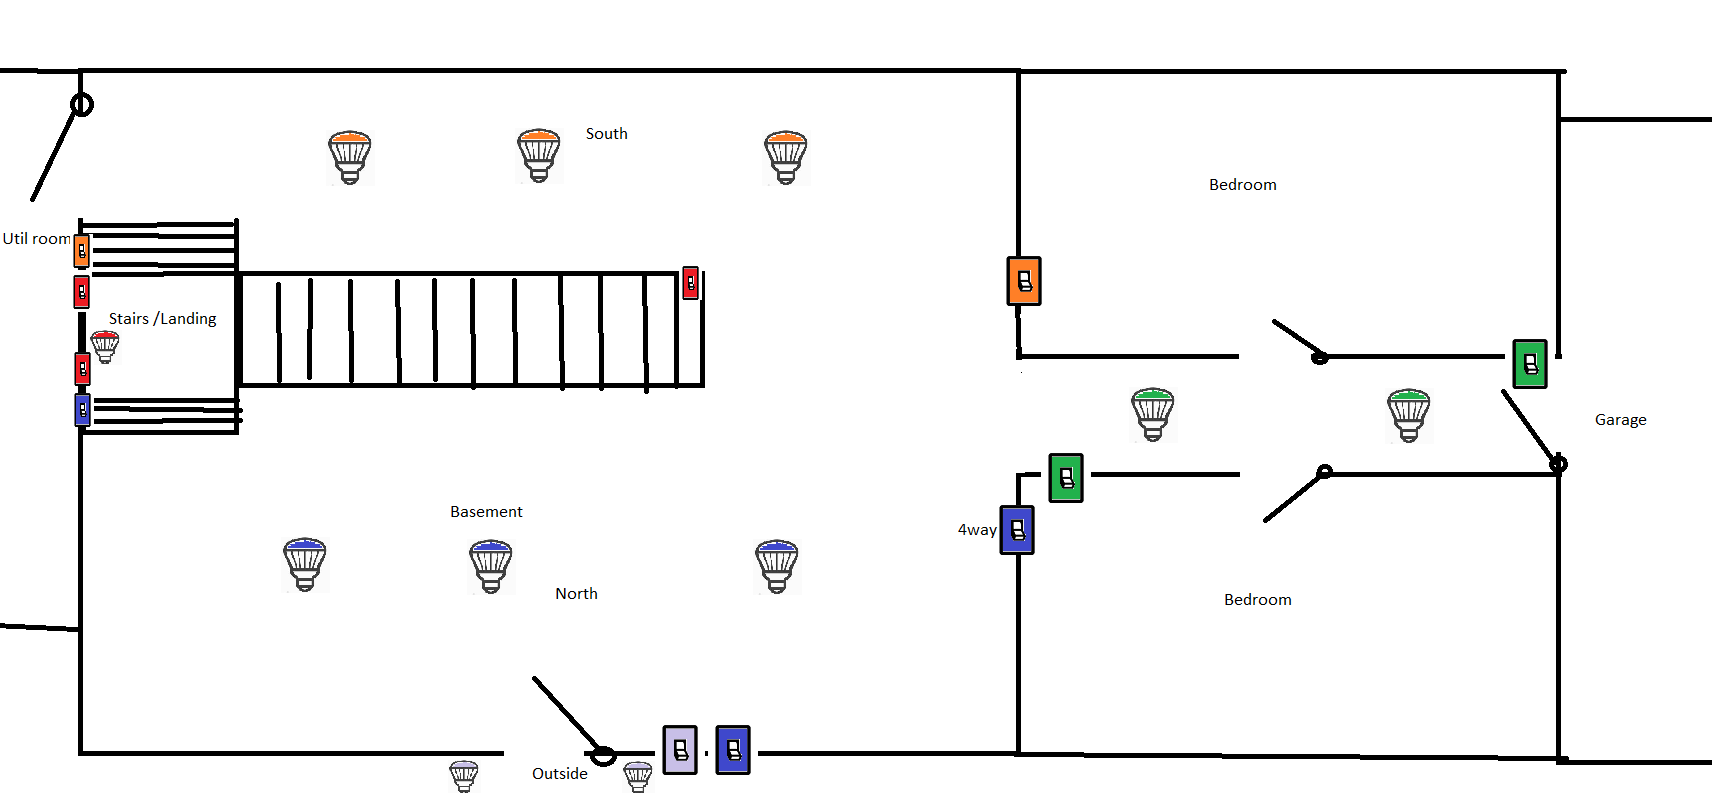 Correct Placement Of Master Switch In 4 Way Design - Devices  U0026 Integrations